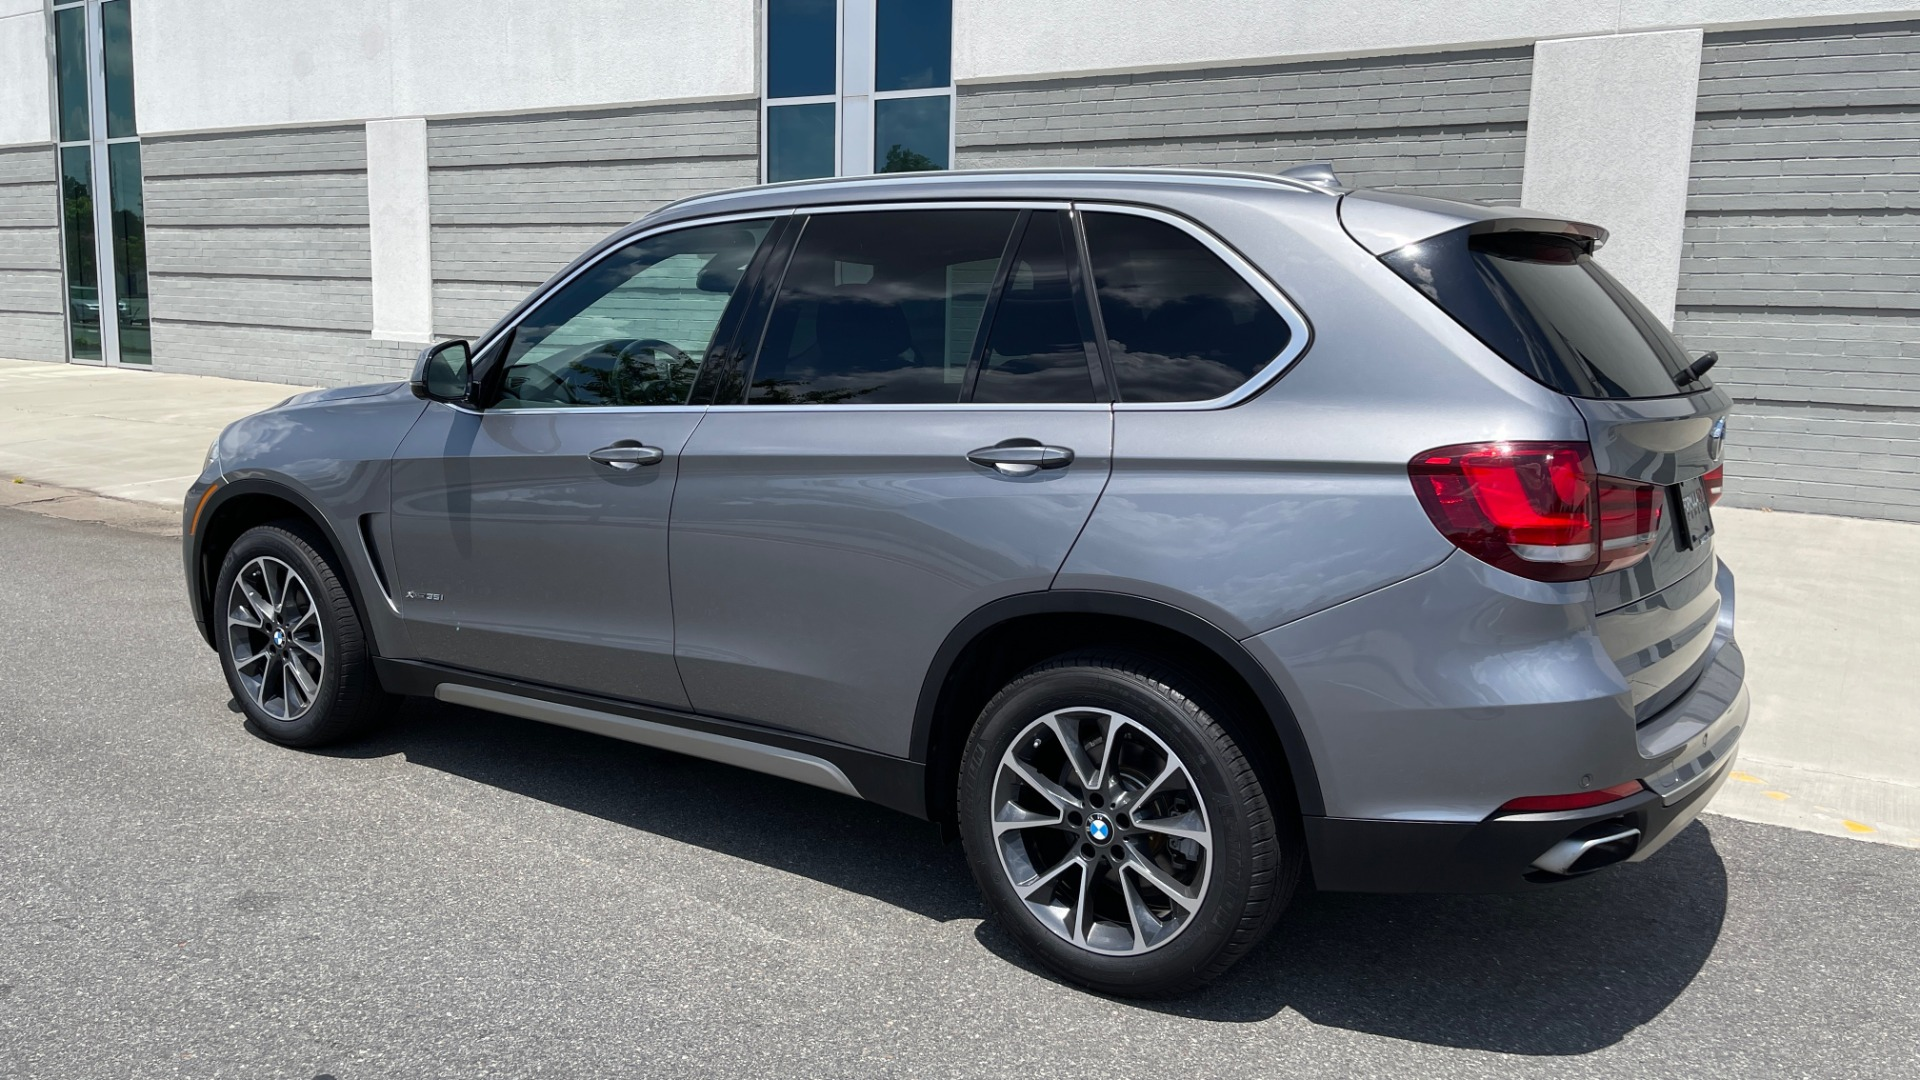 Used 2018 BMW X5 XDRIVE35I PREMIUM / DRVR ASST / WIRELESS CHARGING / CAMERAS for sale $46,995 at Formula Imports in Charlotte NC 28227 5